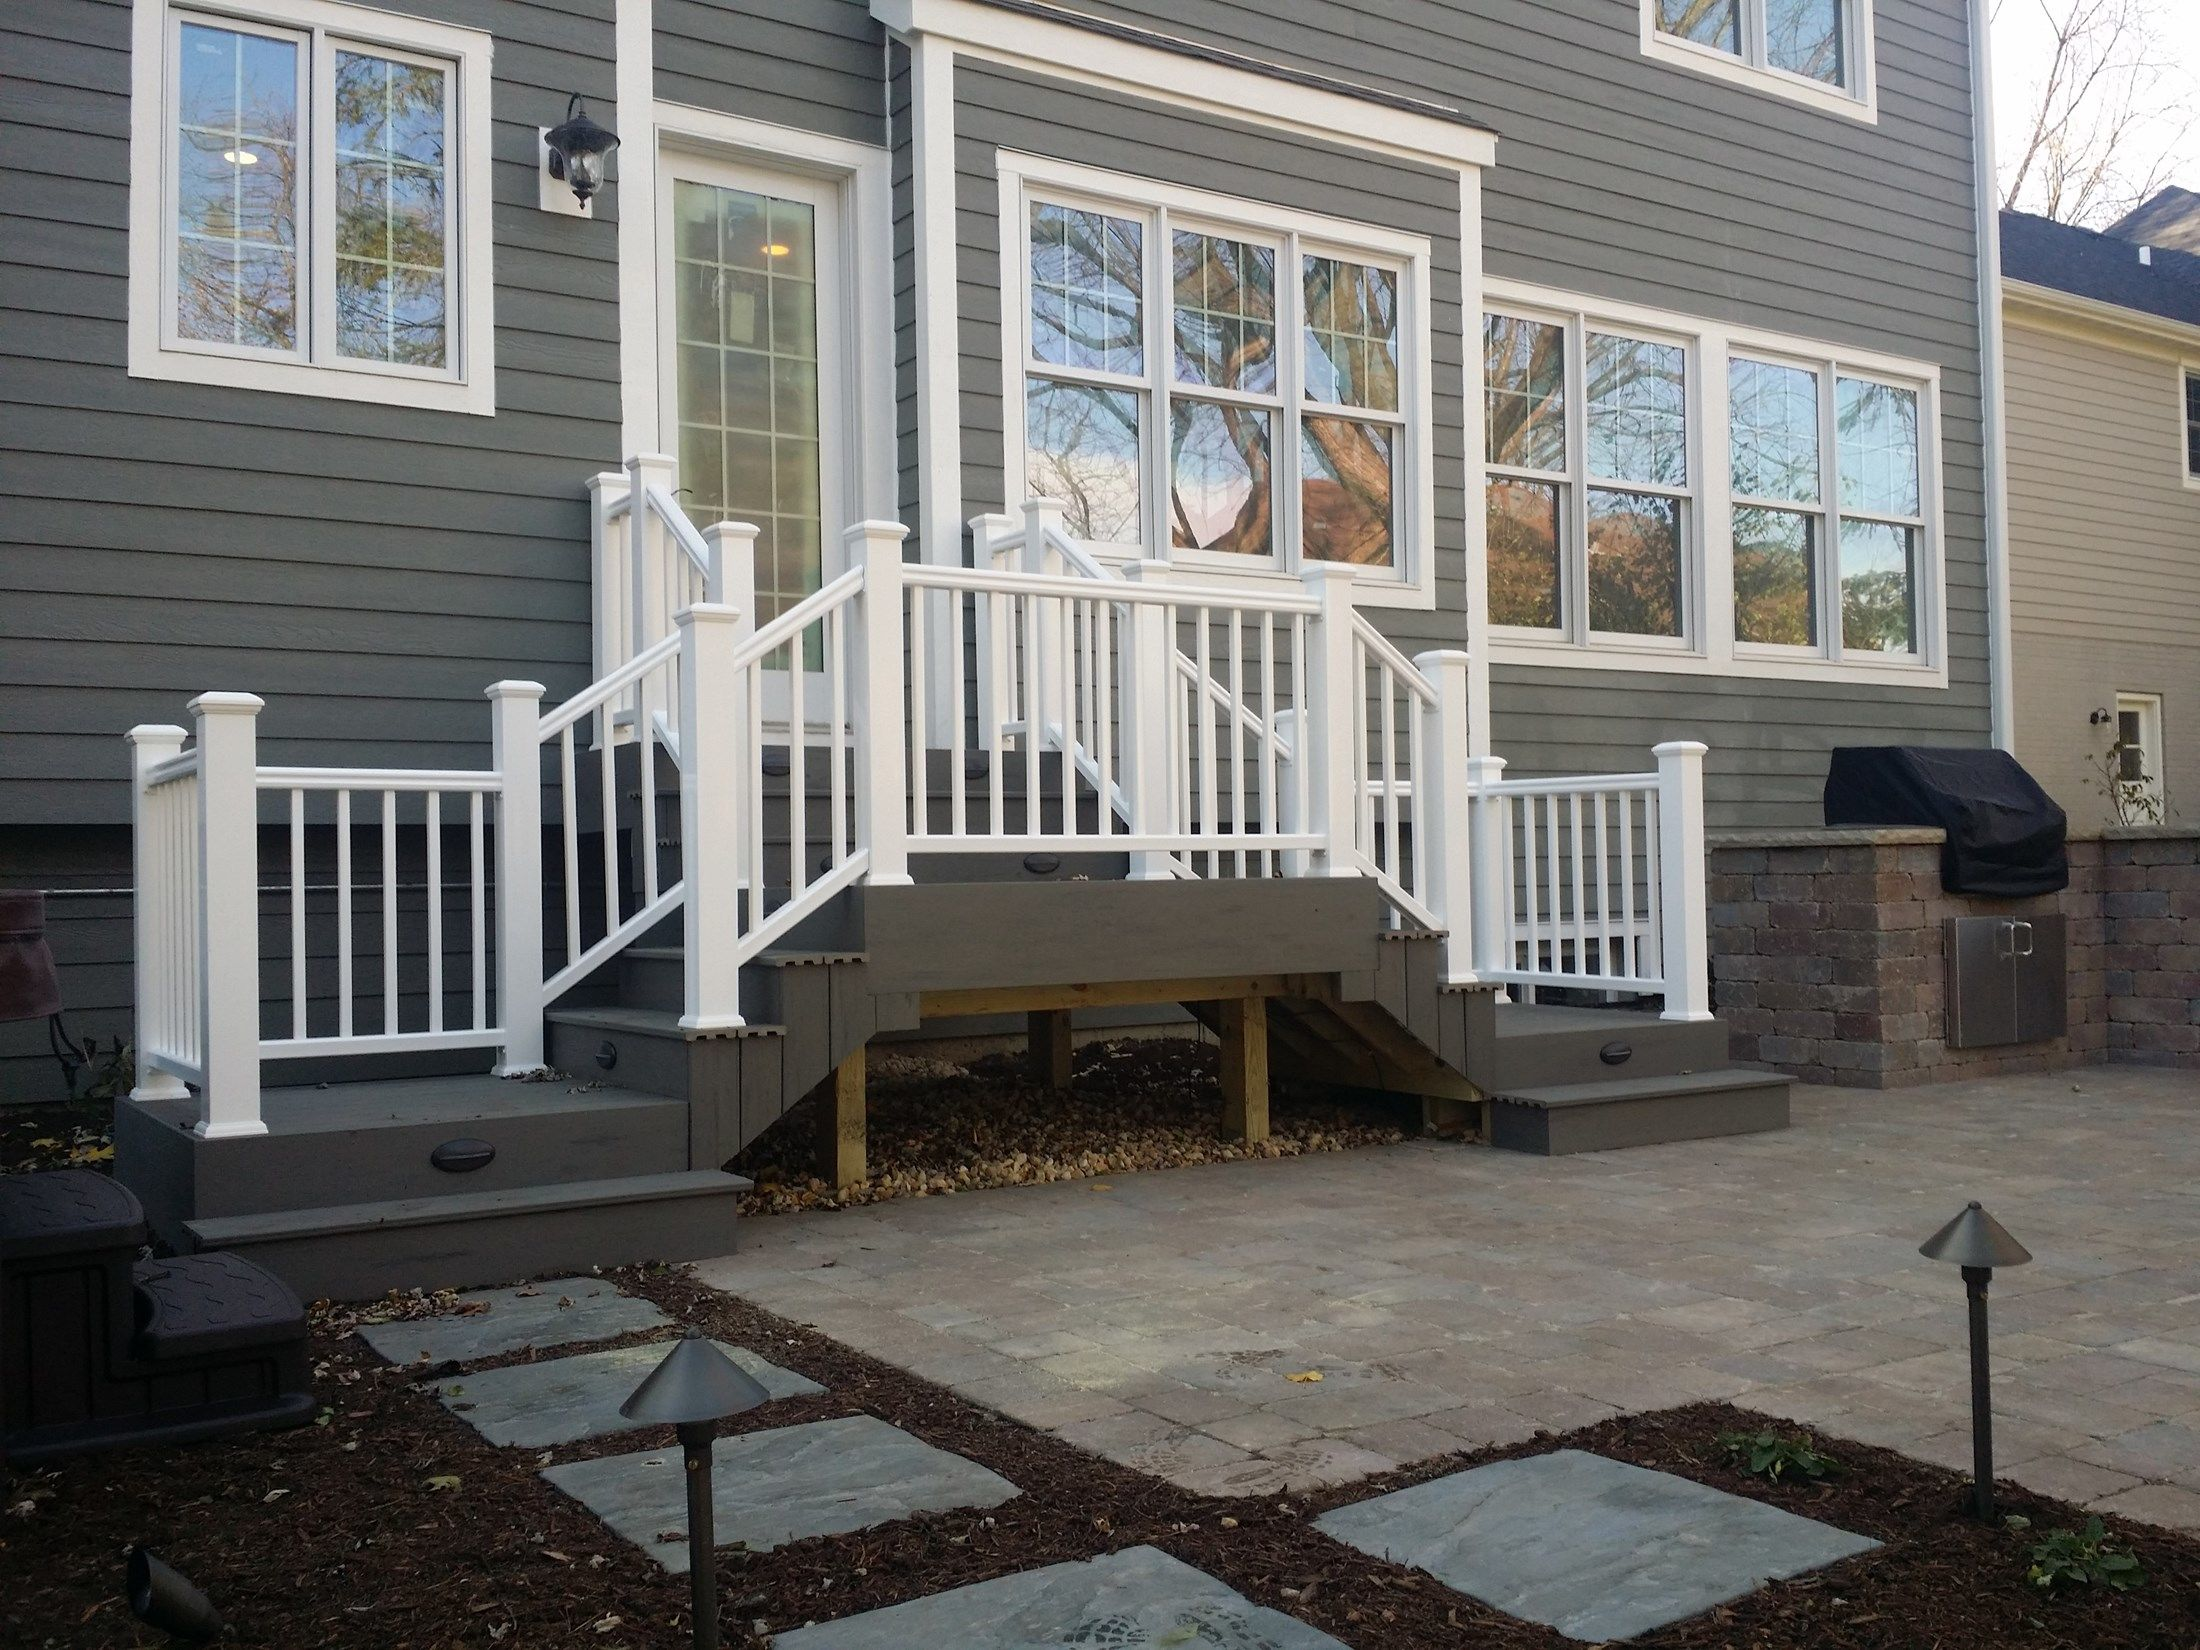 TimberTech Deck - Picture 3645